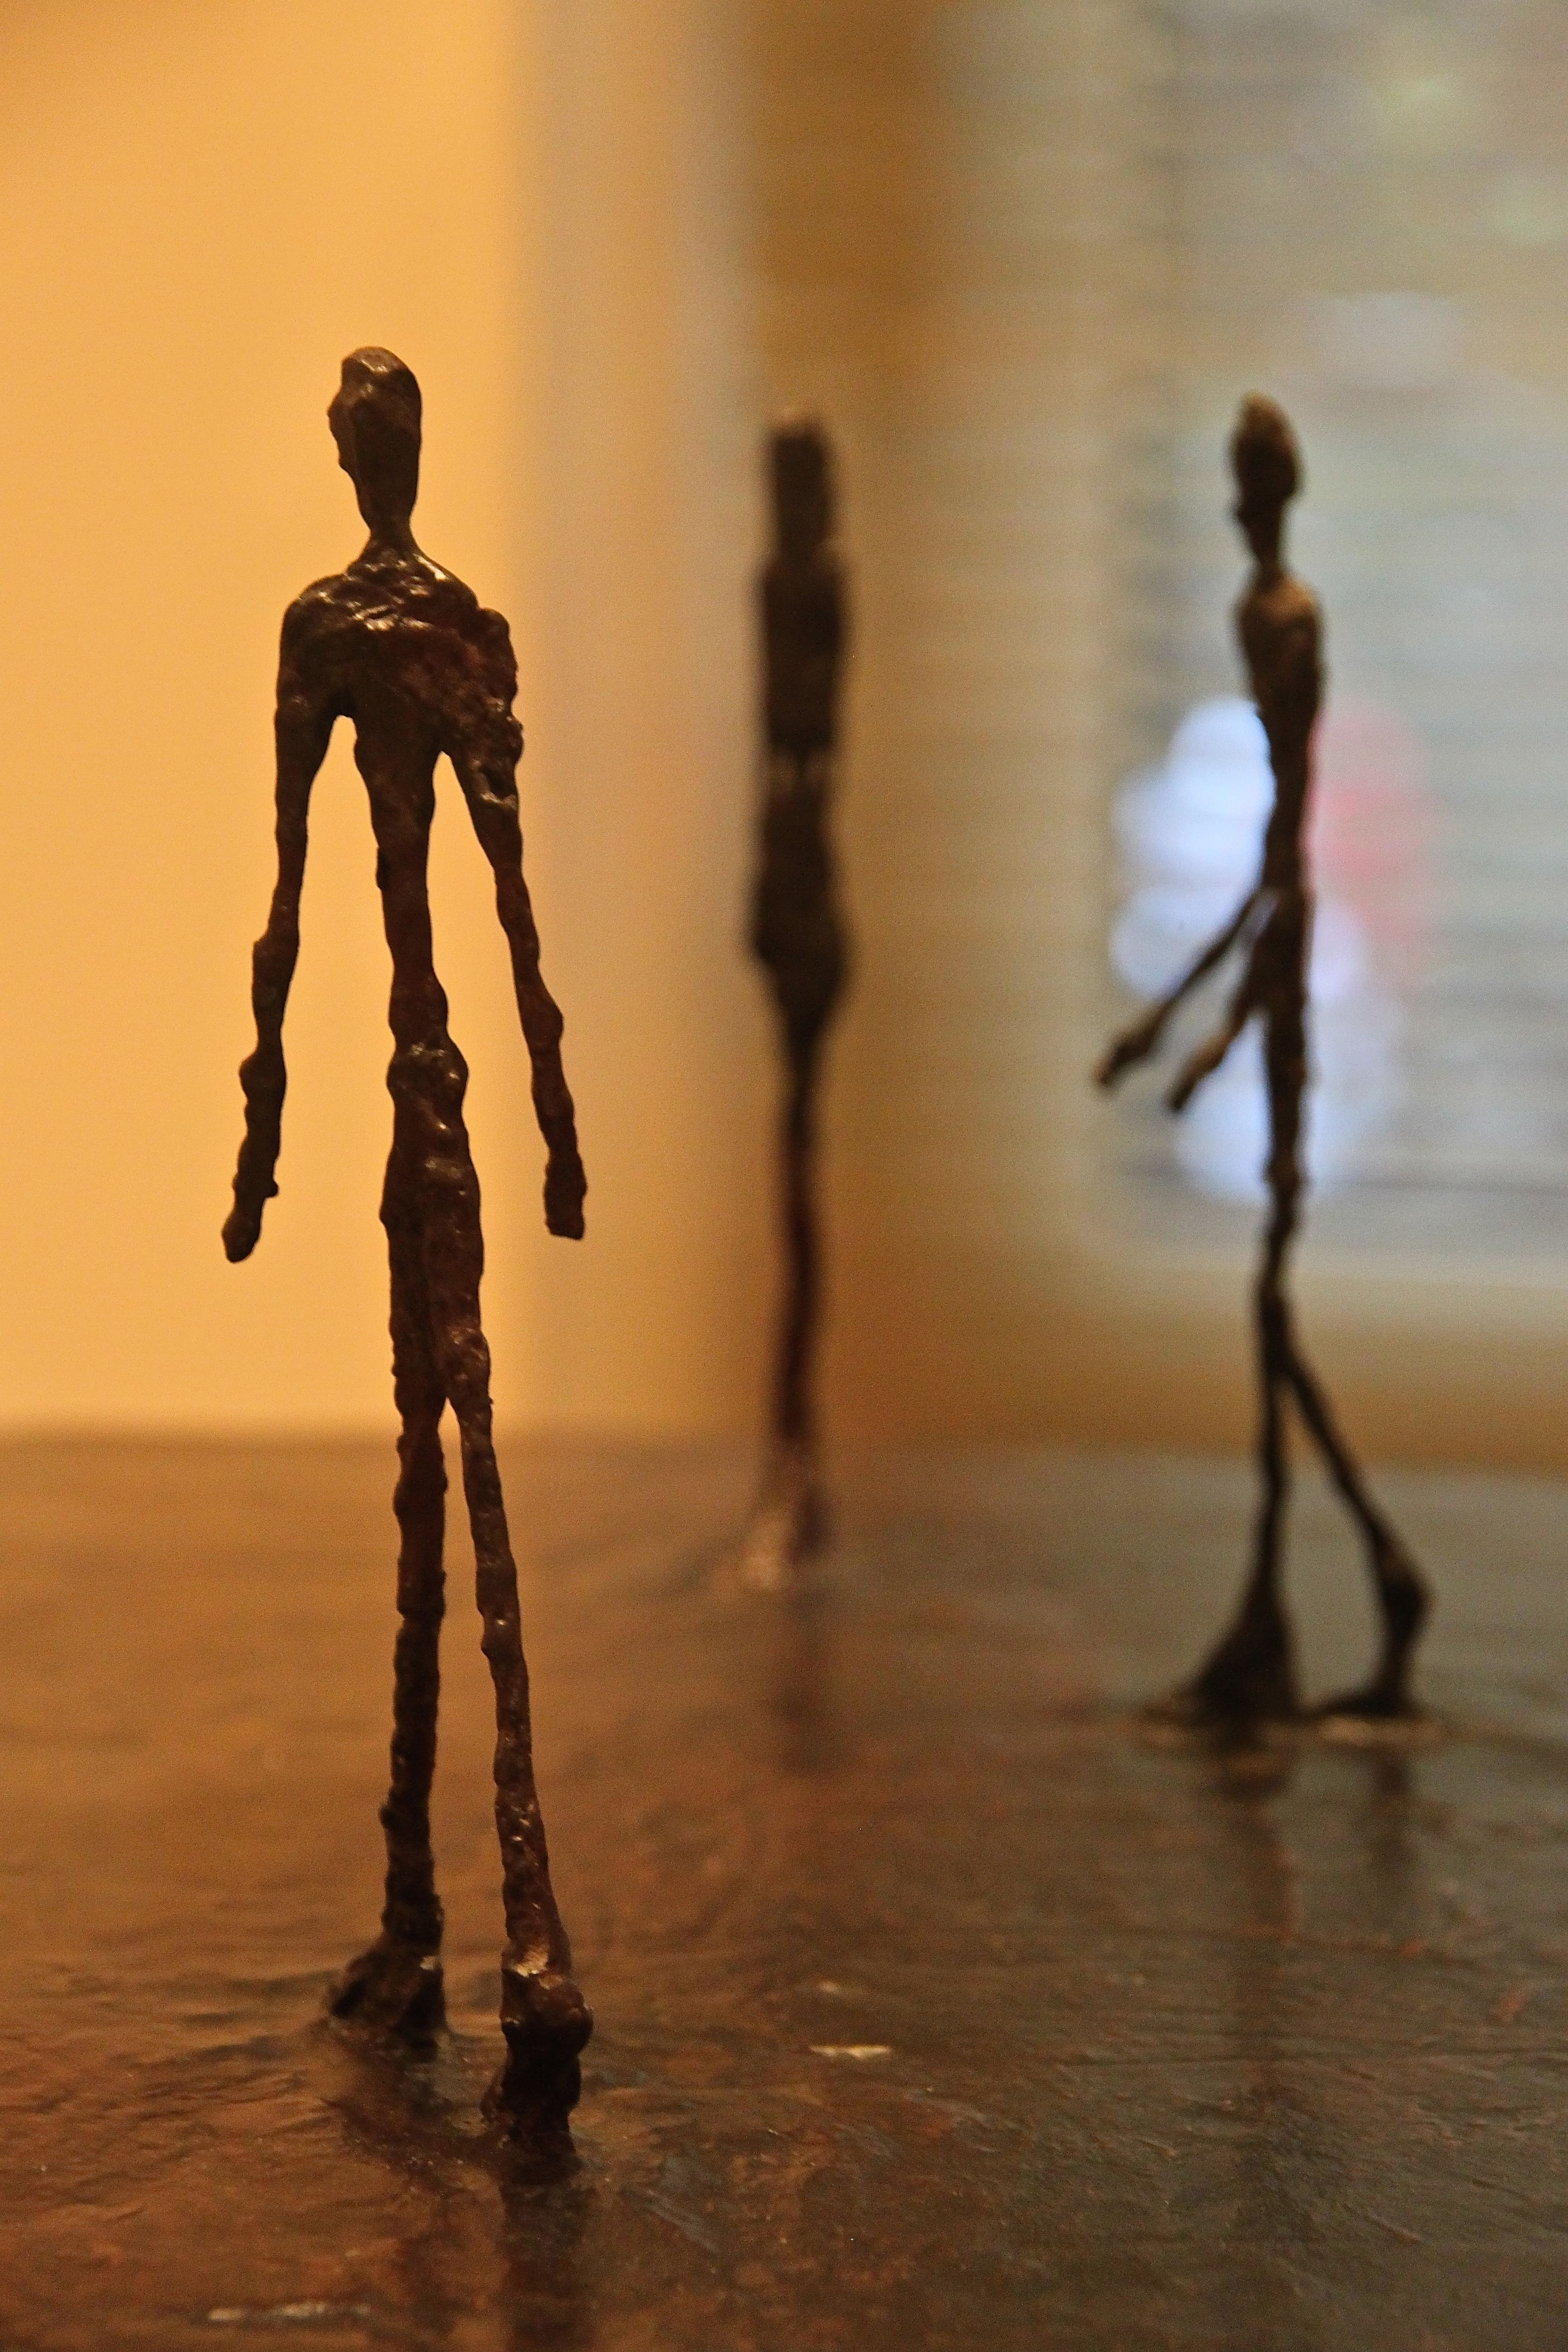 Photo of 3 Alberto Giacometti walking stick men at the Peggy Guggenheim Museum, Venice, Italy